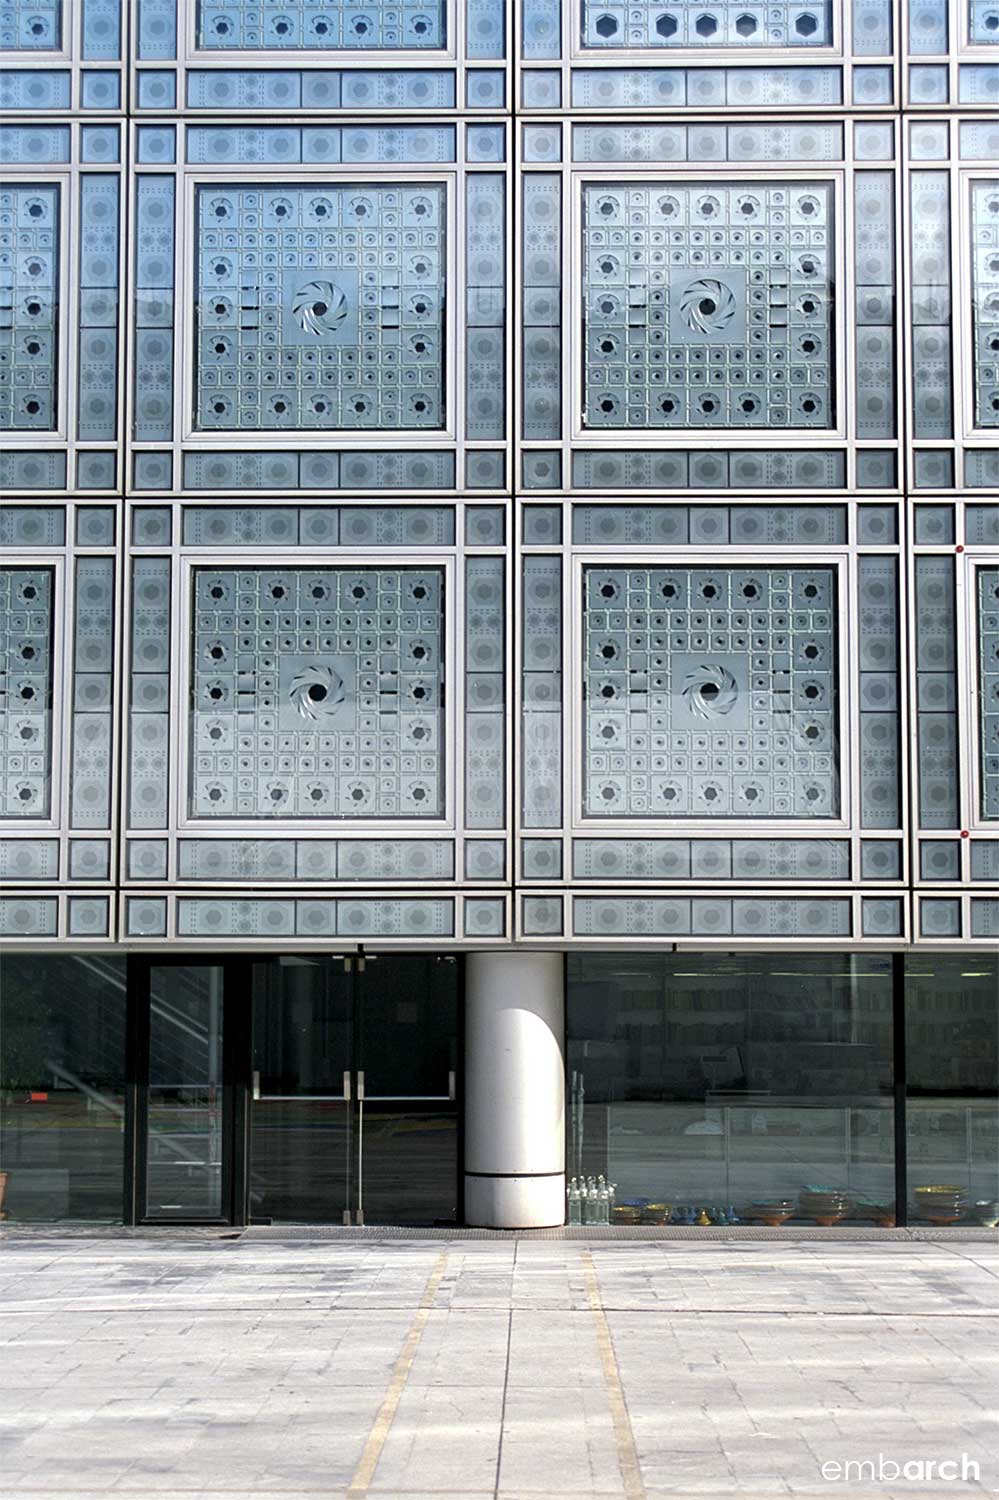 Arab World Institute - facade detail